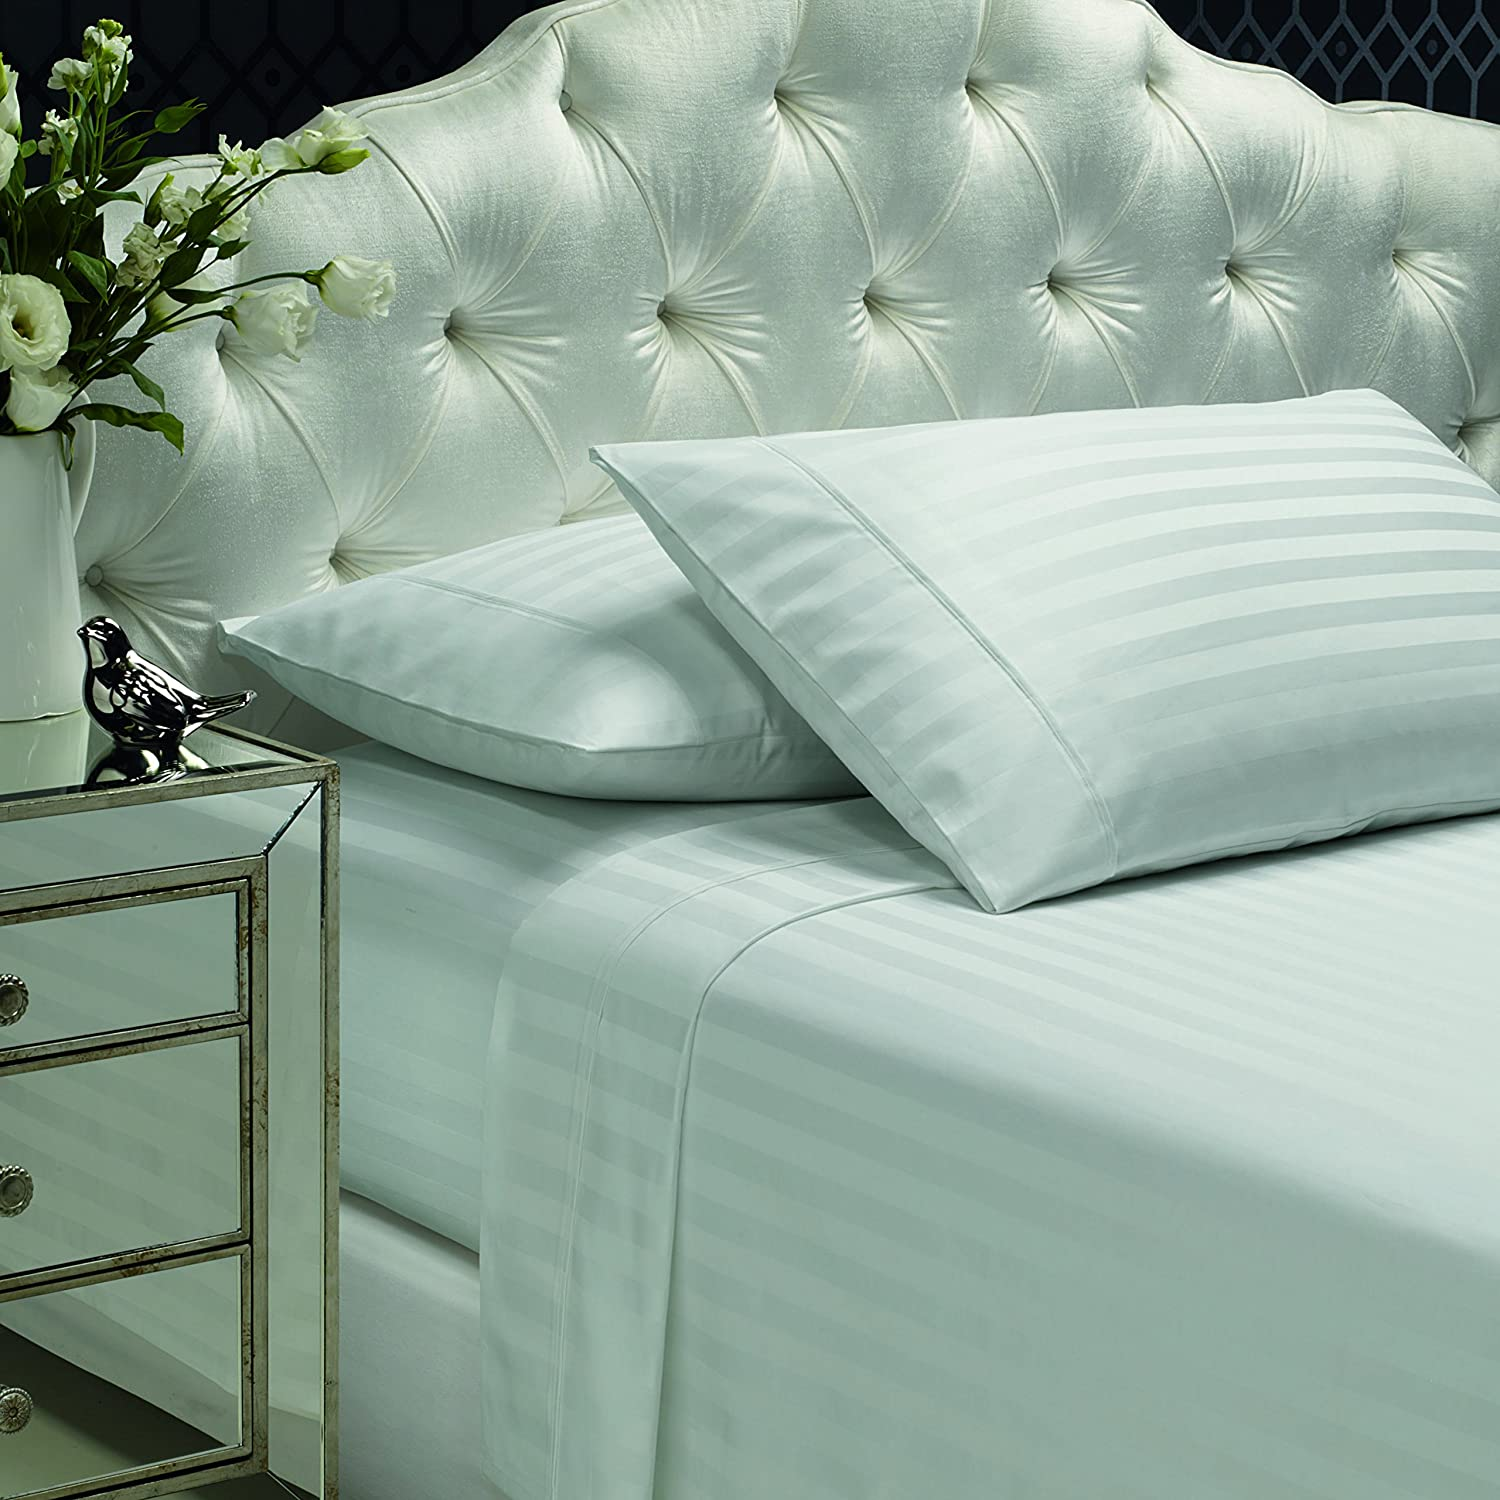 Labor Day Bedding Comforters Sale Ease Bedding With Style